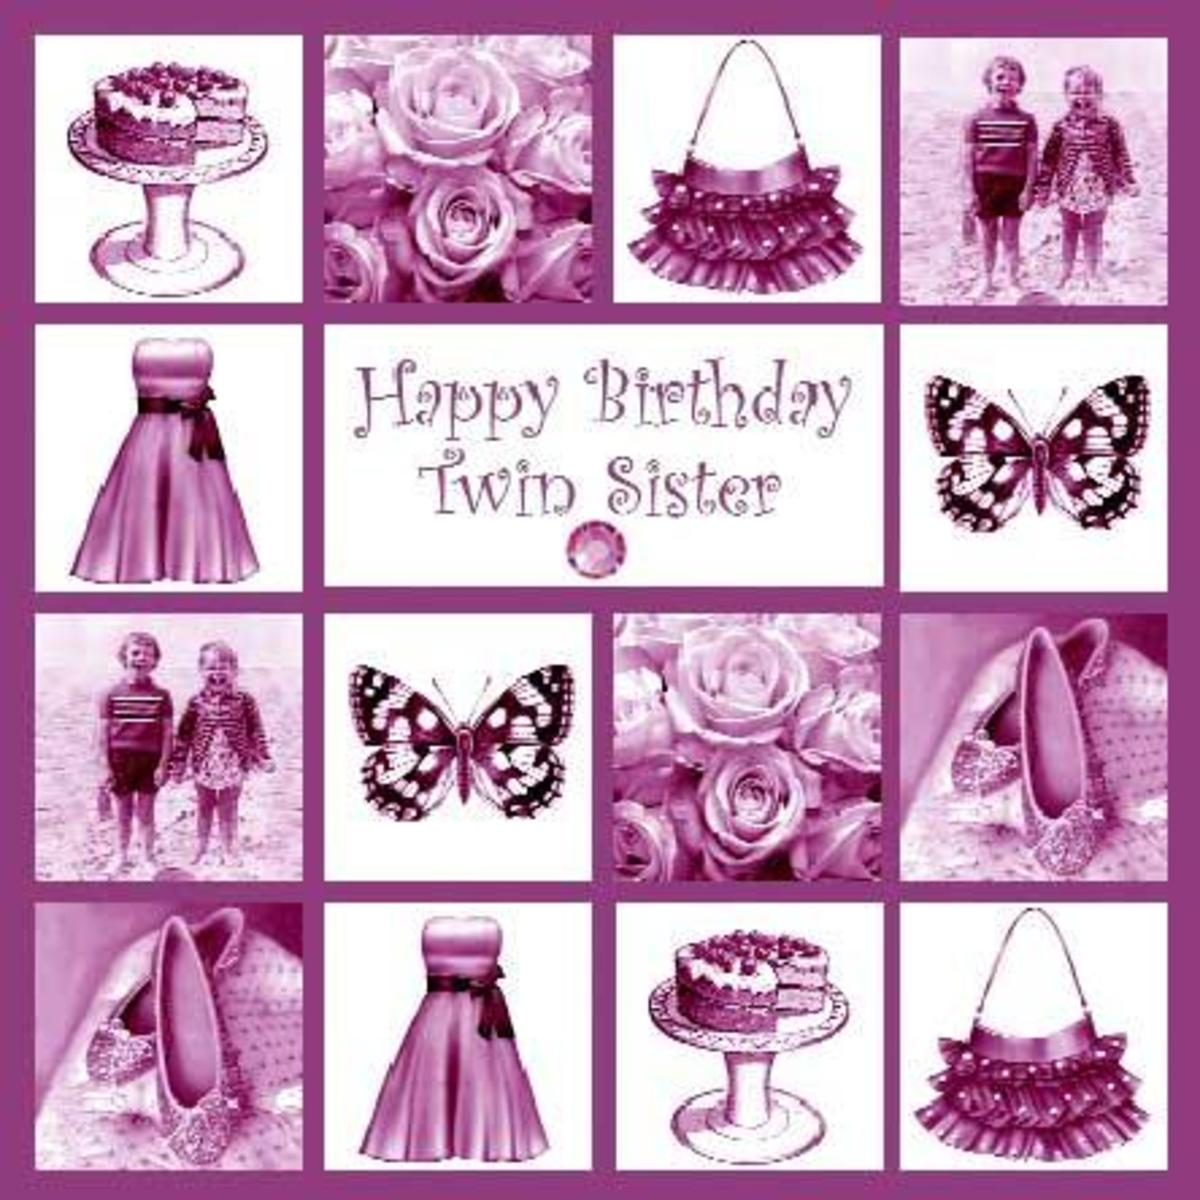 Happy birthday wishes and quotes for your sister holidappy birthday to a sister is one for your own twin sister below find some great cards with quotes on them for your twin on her and your special day bookmarktalkfo Gallery